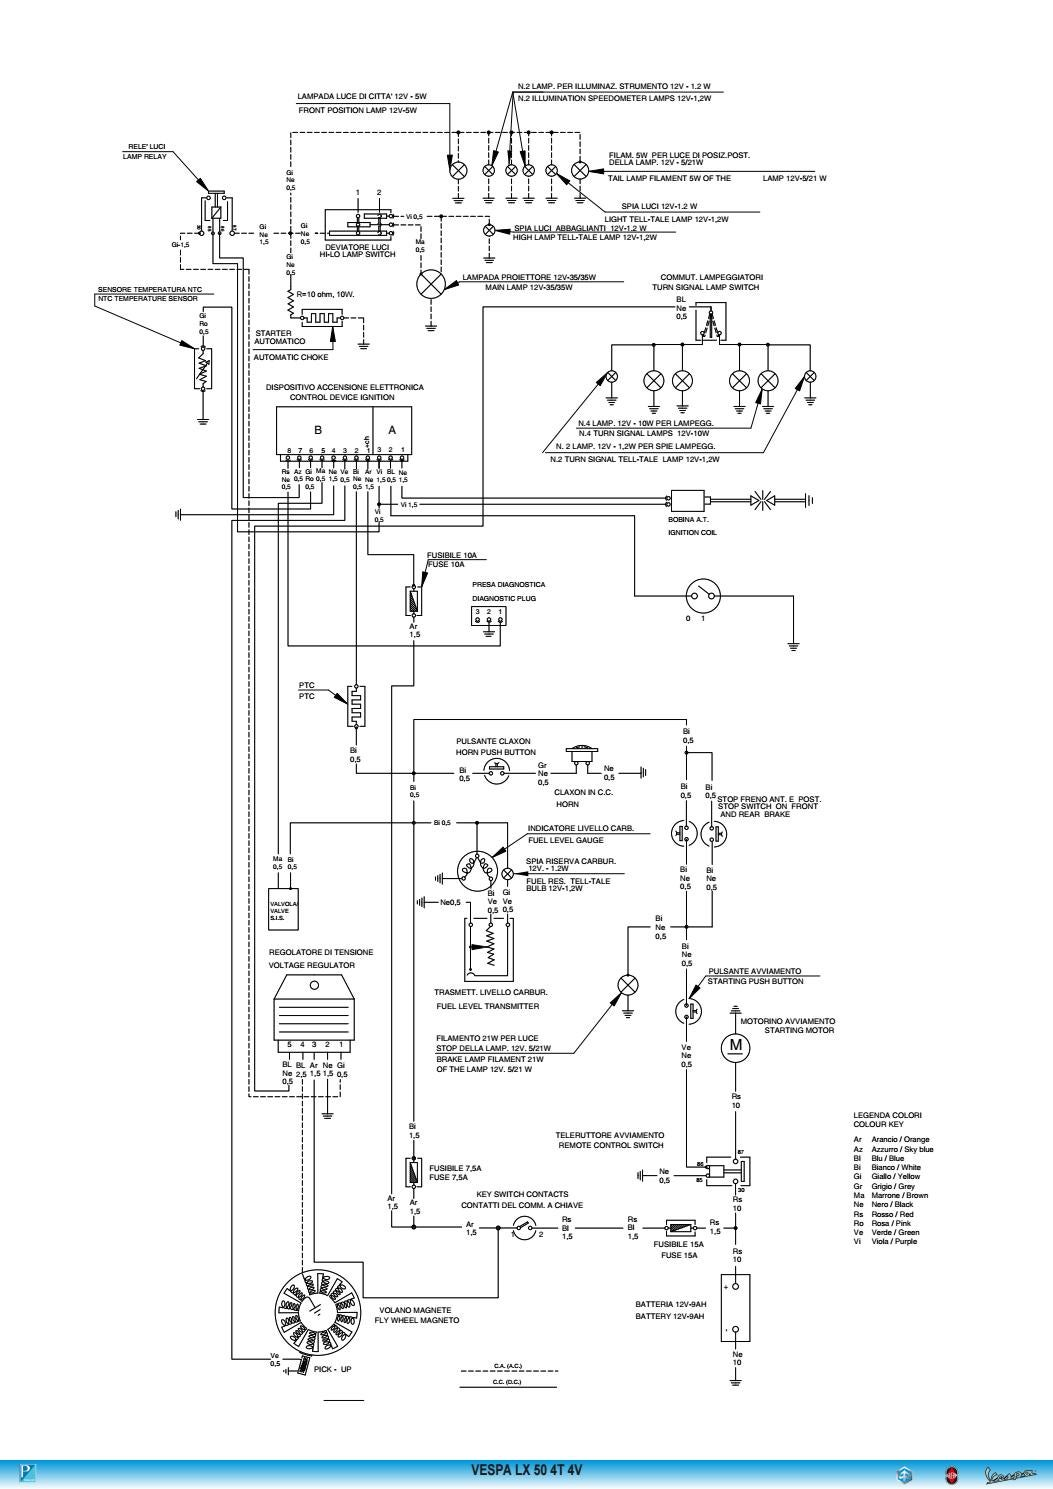 schematic to schematic wiring diagram vespa lx 50 4 valve wiring diagram by duarte grilo - issuu vespa lx150 schematic wiring #10